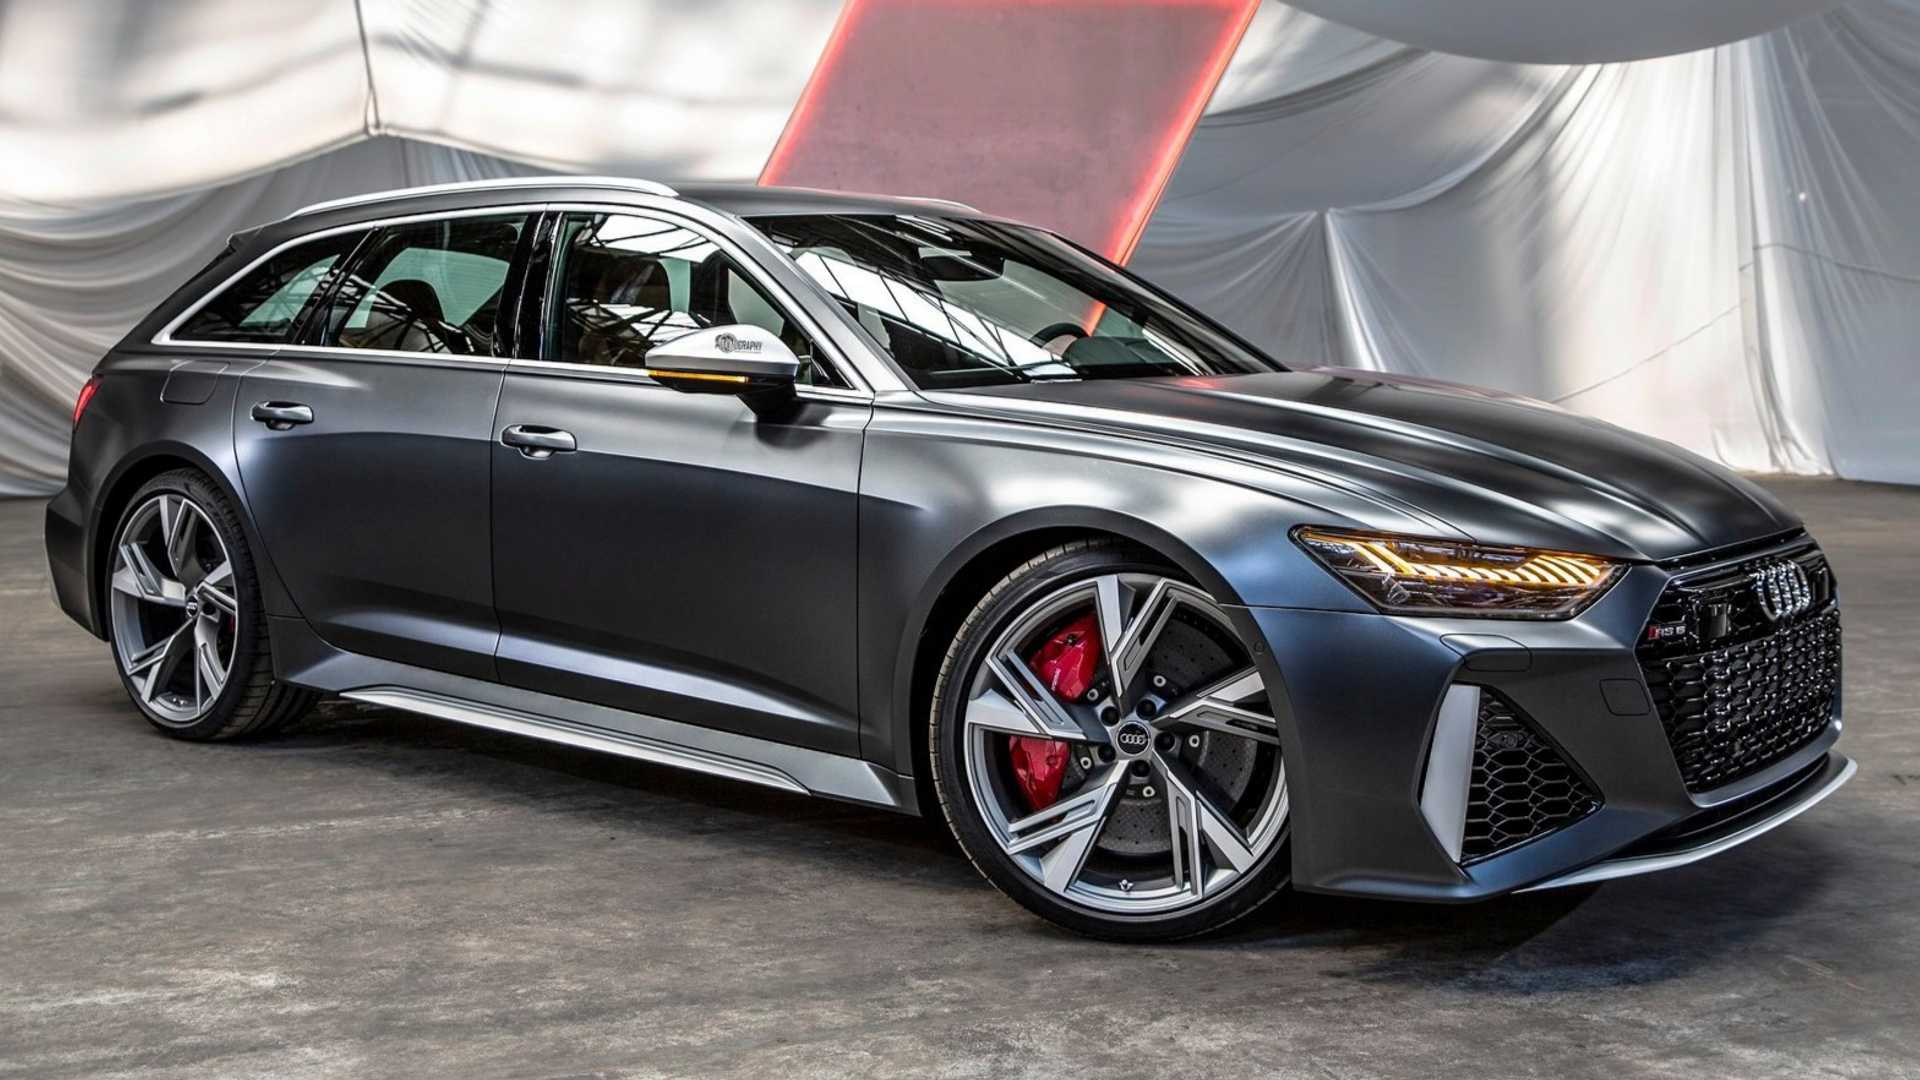 Best Wagons 2020.2020 Audi Rs6 Avant Video Illustrates Our Love For Super Wagons